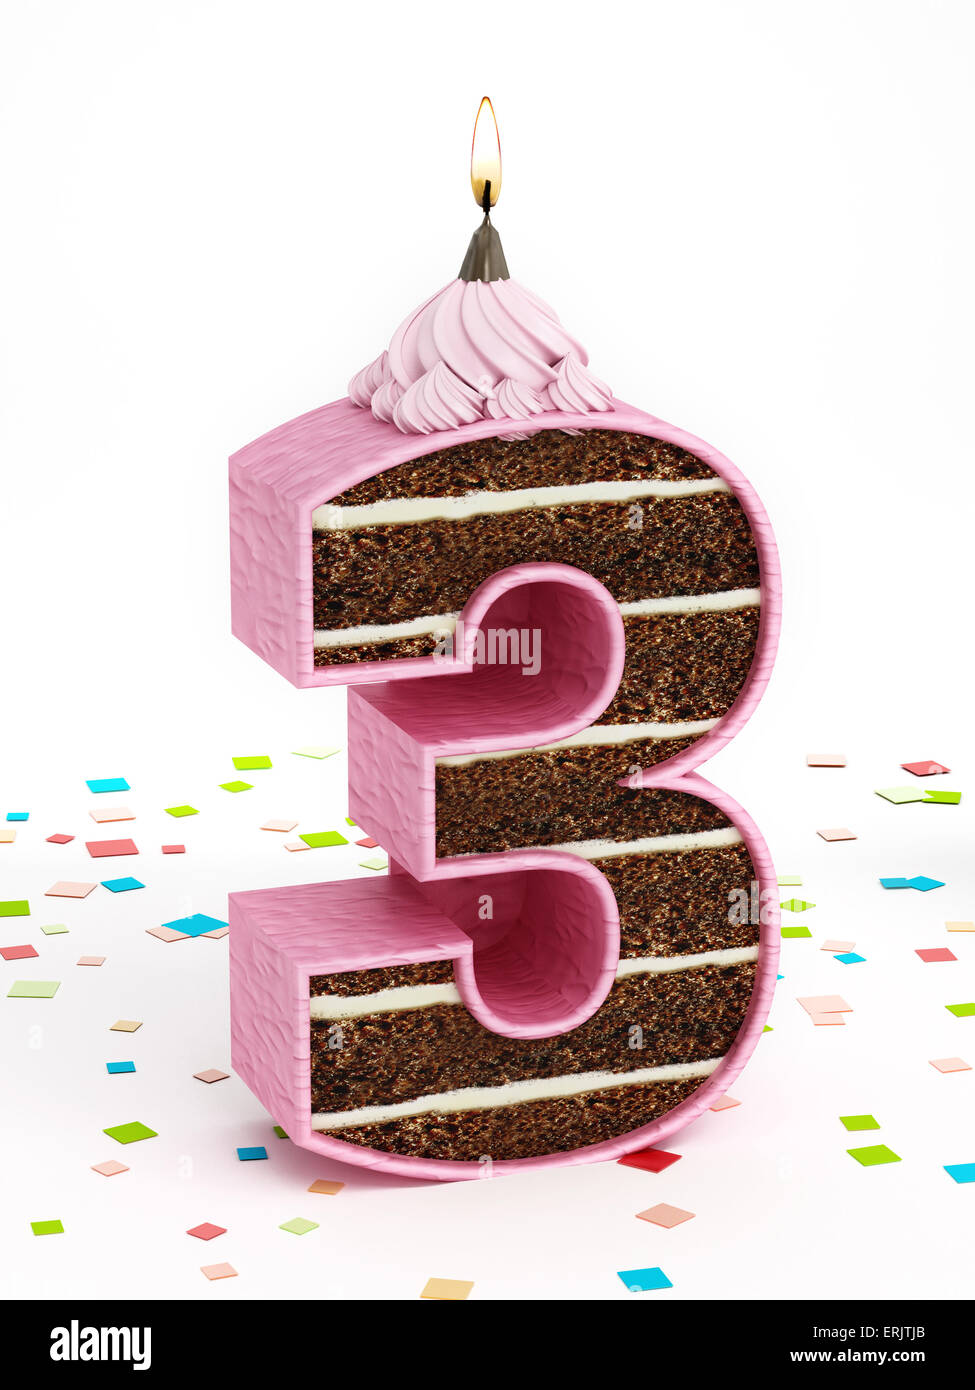 Number 3 shaped chocolate birthday cake with lit candle. - Stock Image